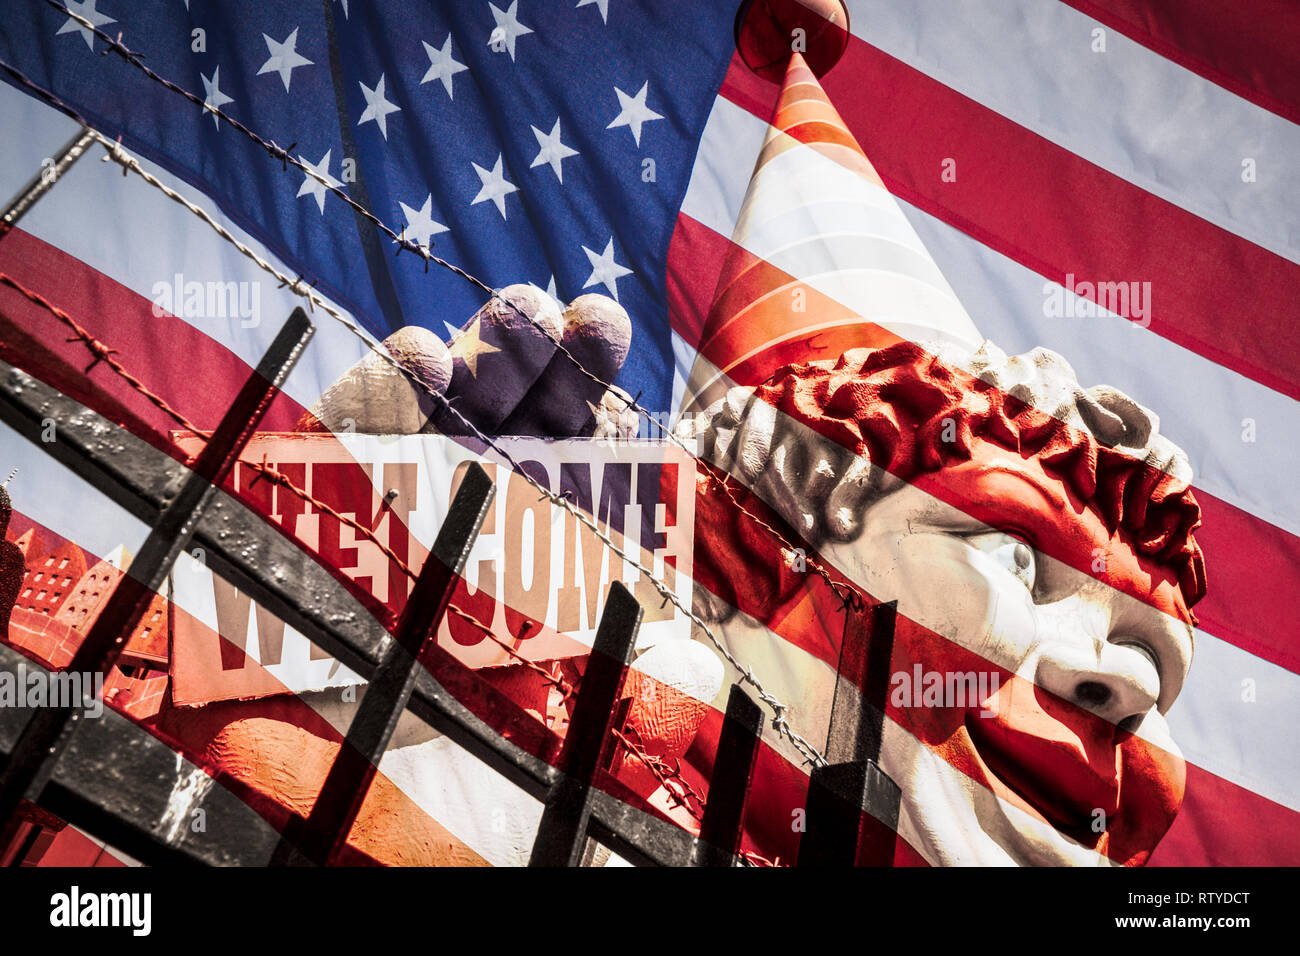 Clown holding welcome sign behind razor wire fence: USA, United States of America immigration concept image. - Stock Image